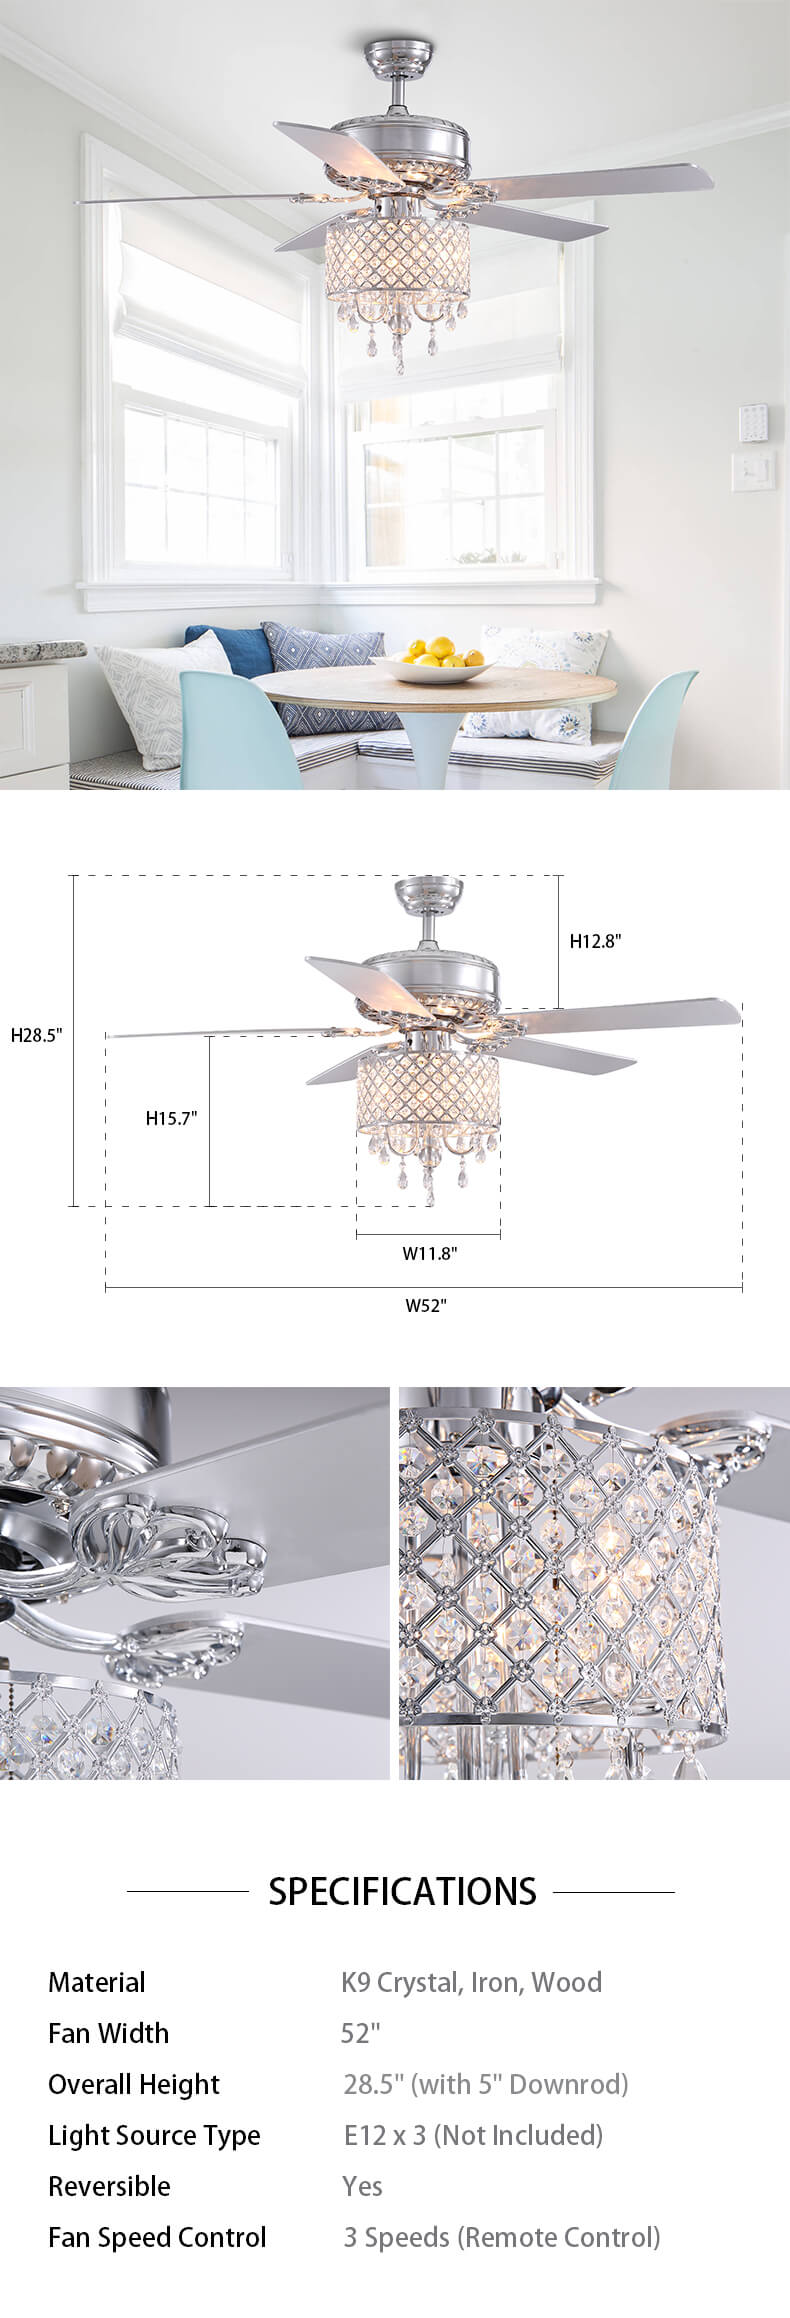 Chrome Blade Crystal Ceiling Fan Dimensions